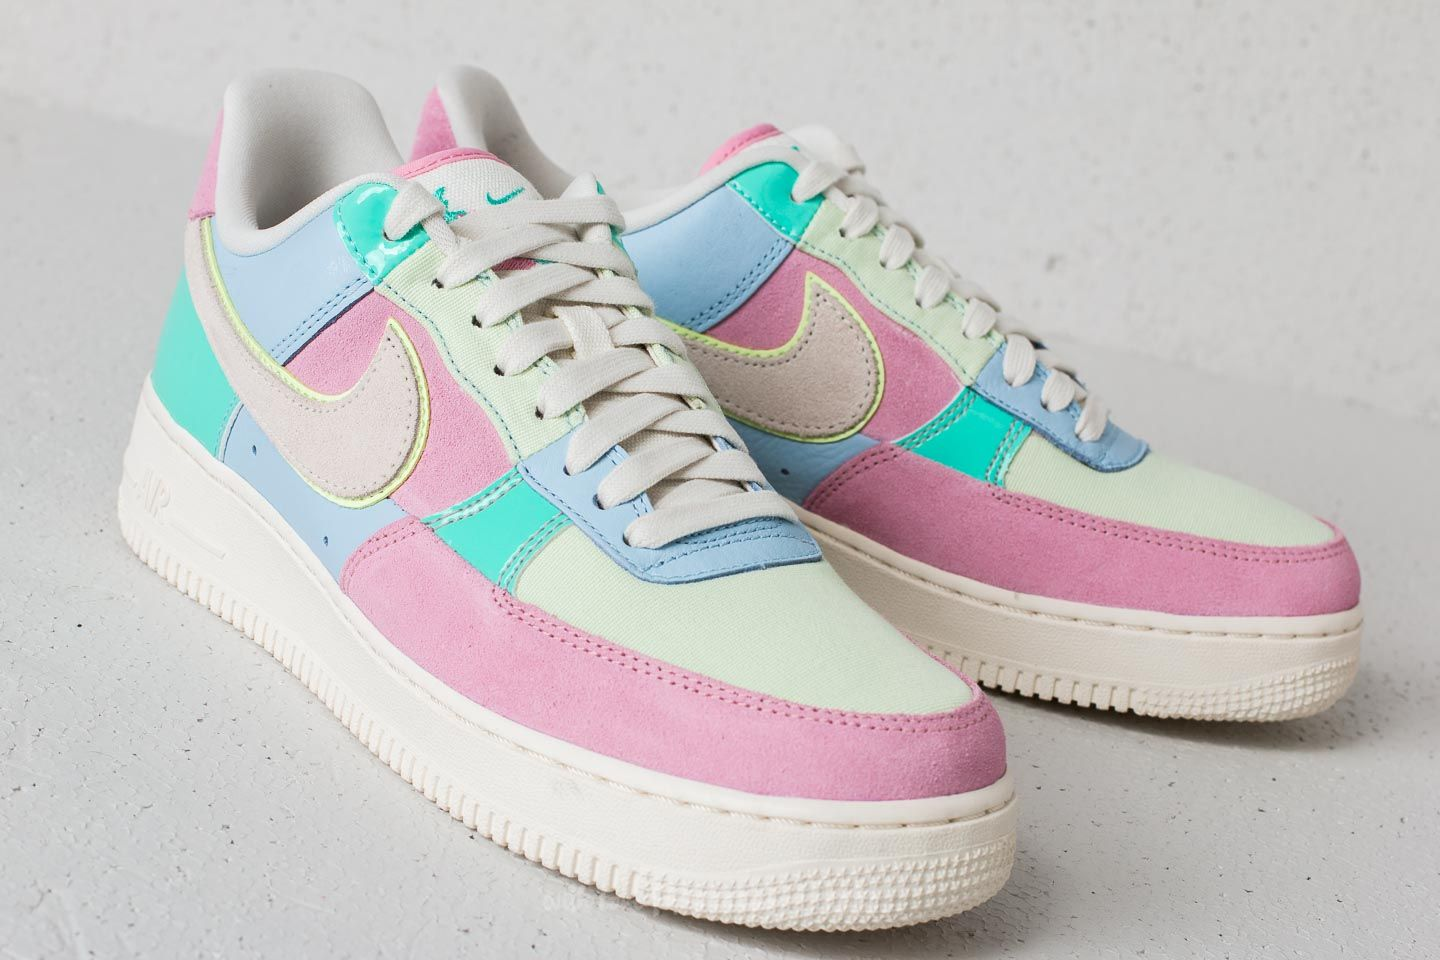 Nike Air Force 1 '07 - Buy these adorably colorful shoes at Kith for $130.